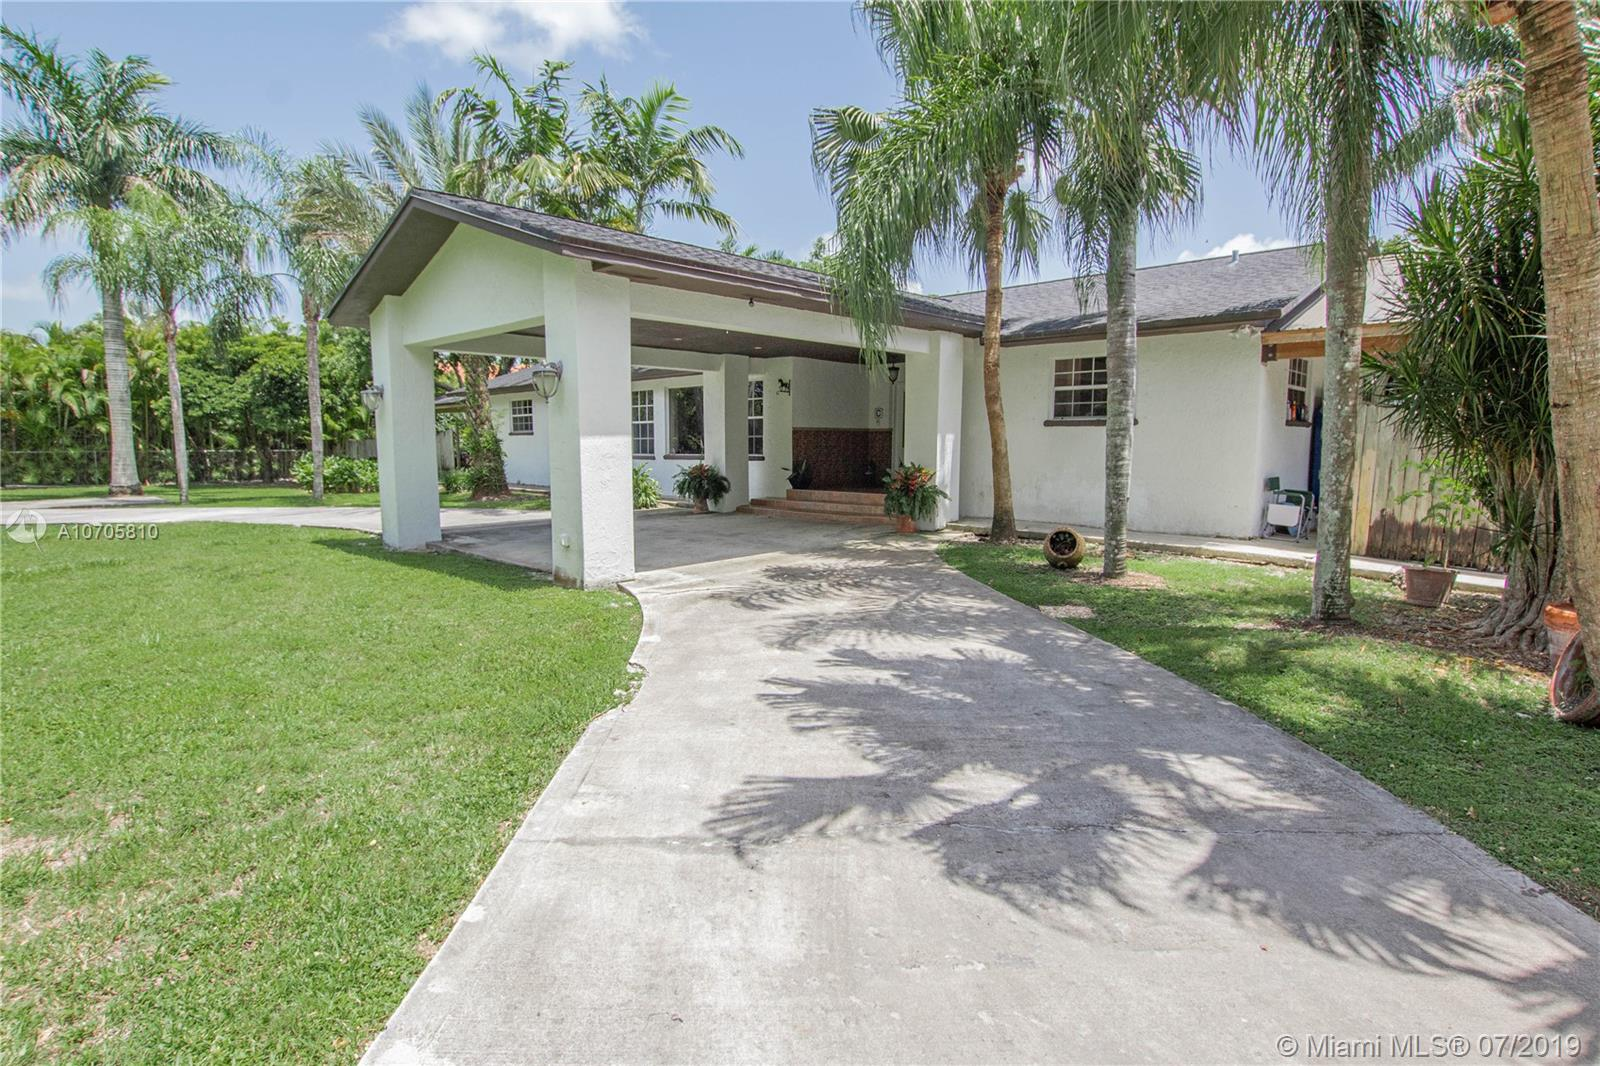 20830 SW 240th St, Homestead, Florida